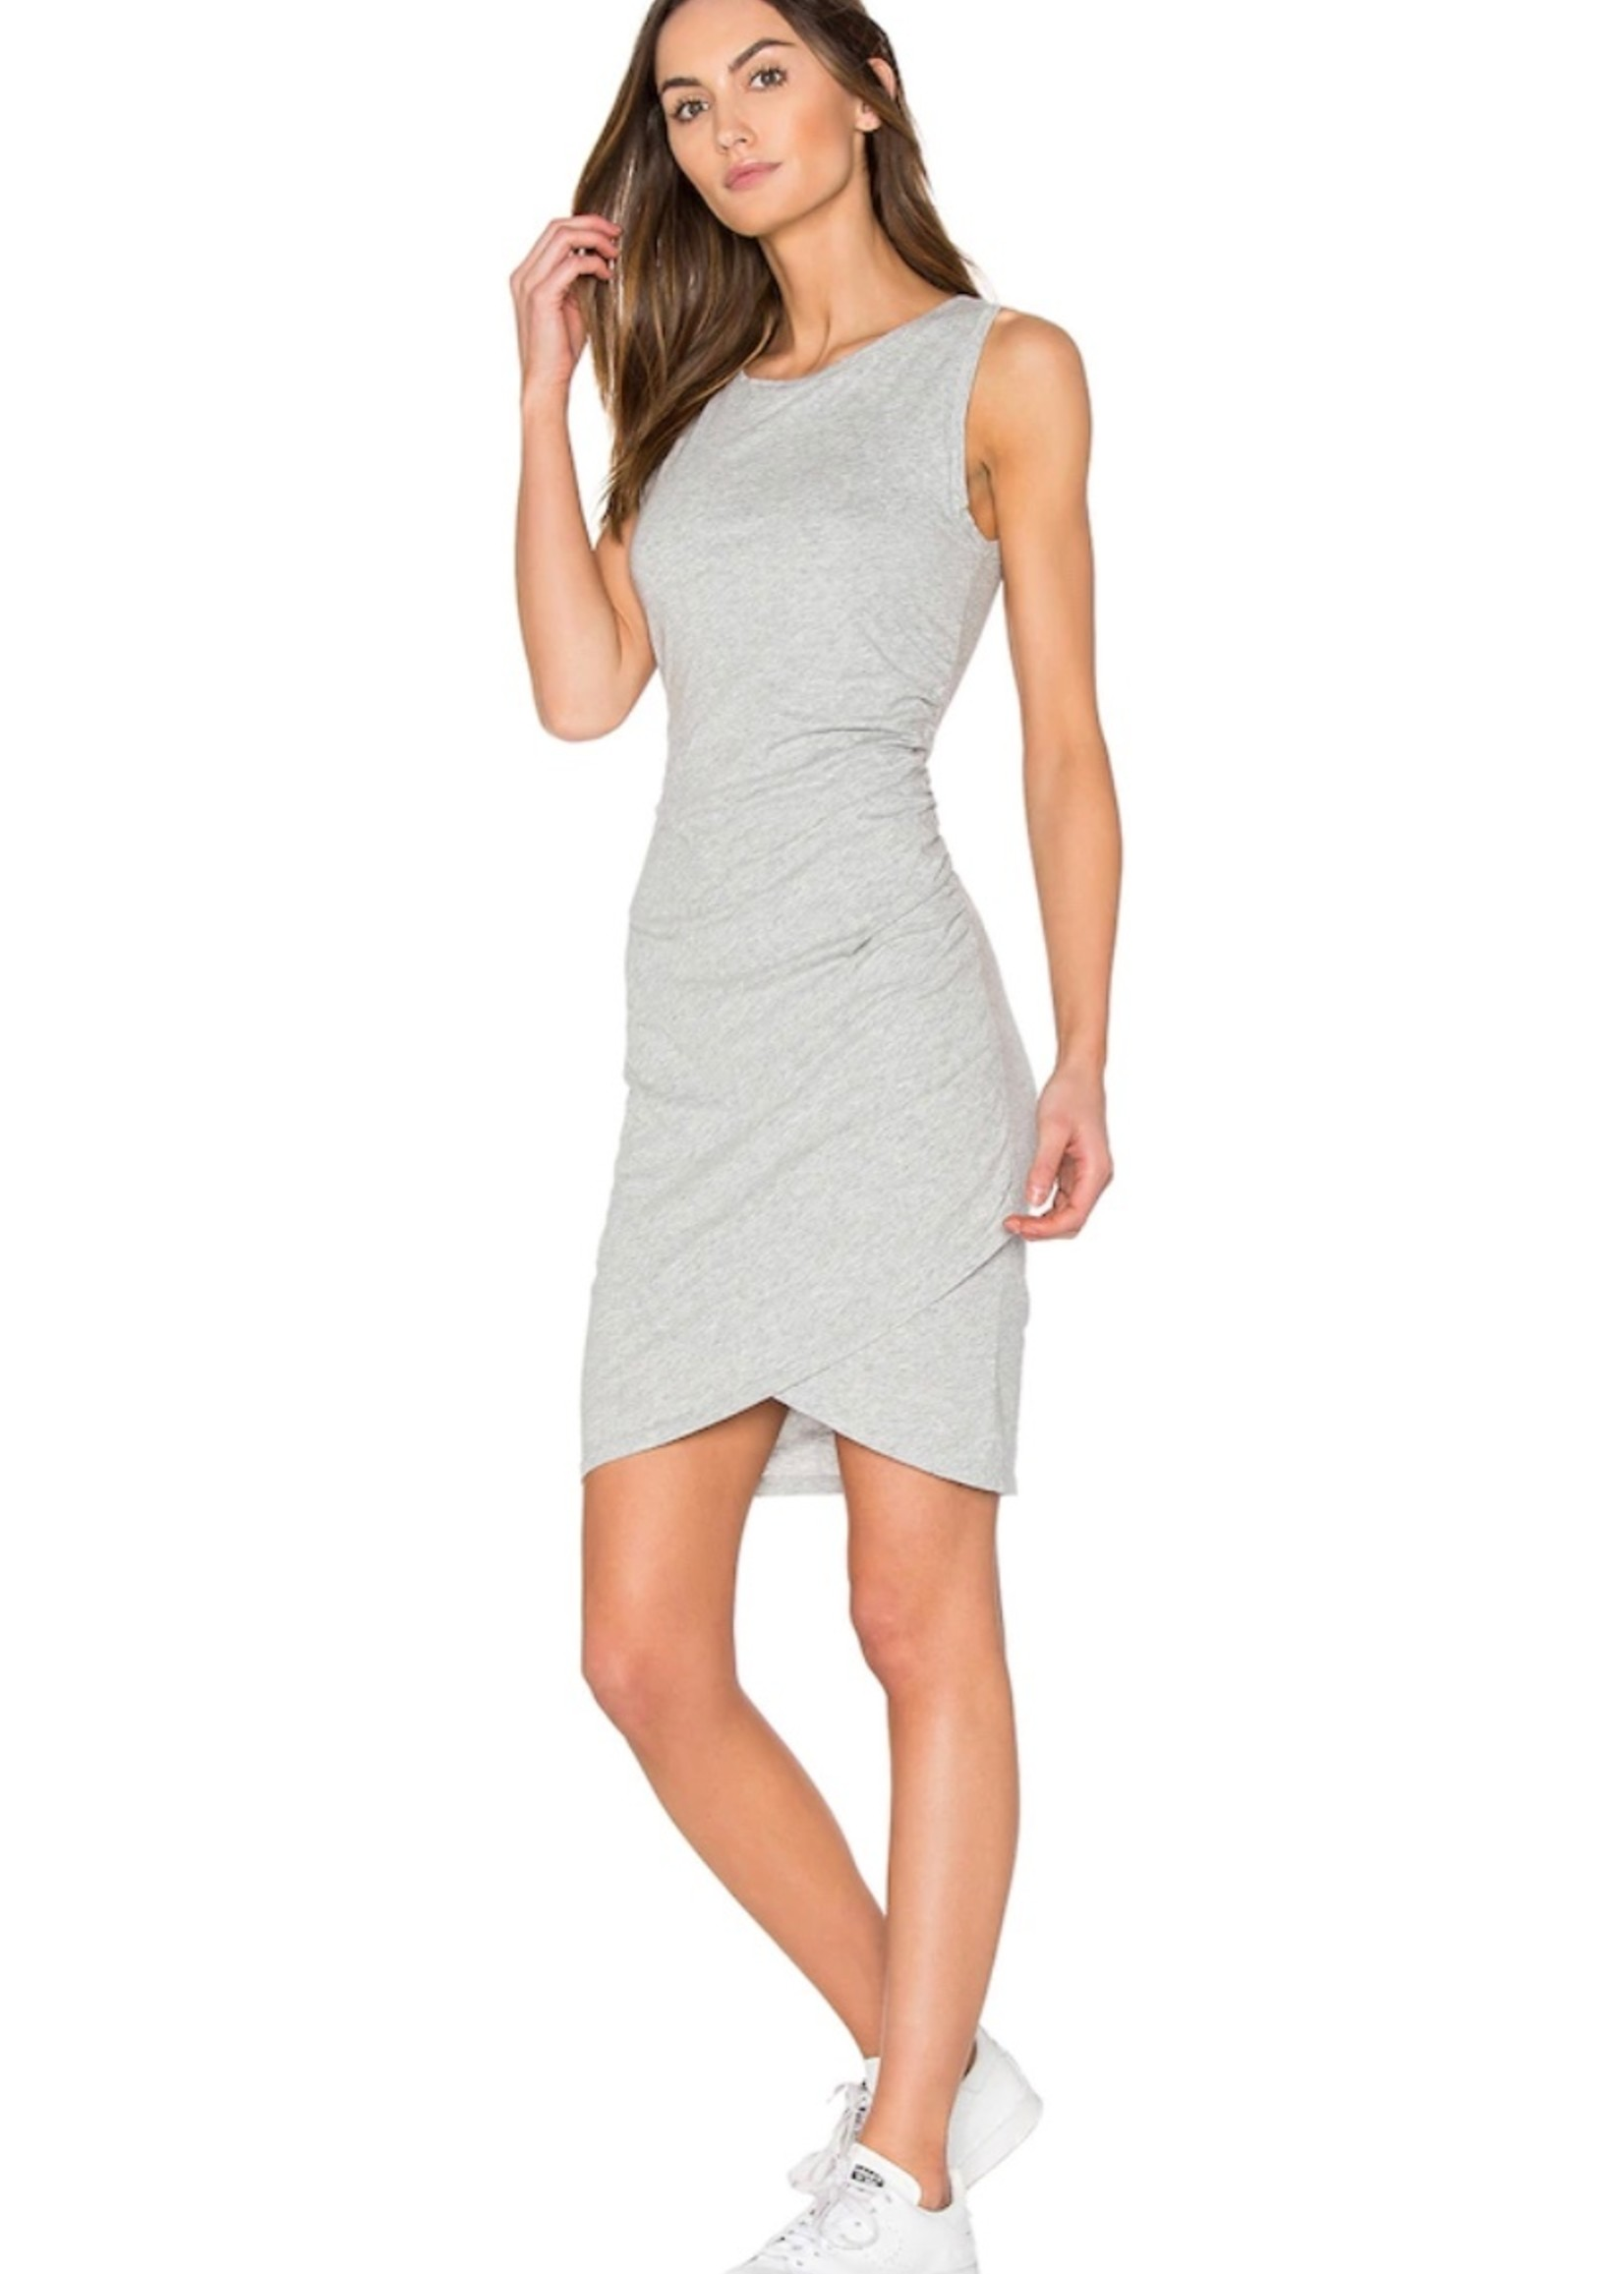 Bobi Grey heather tank dress